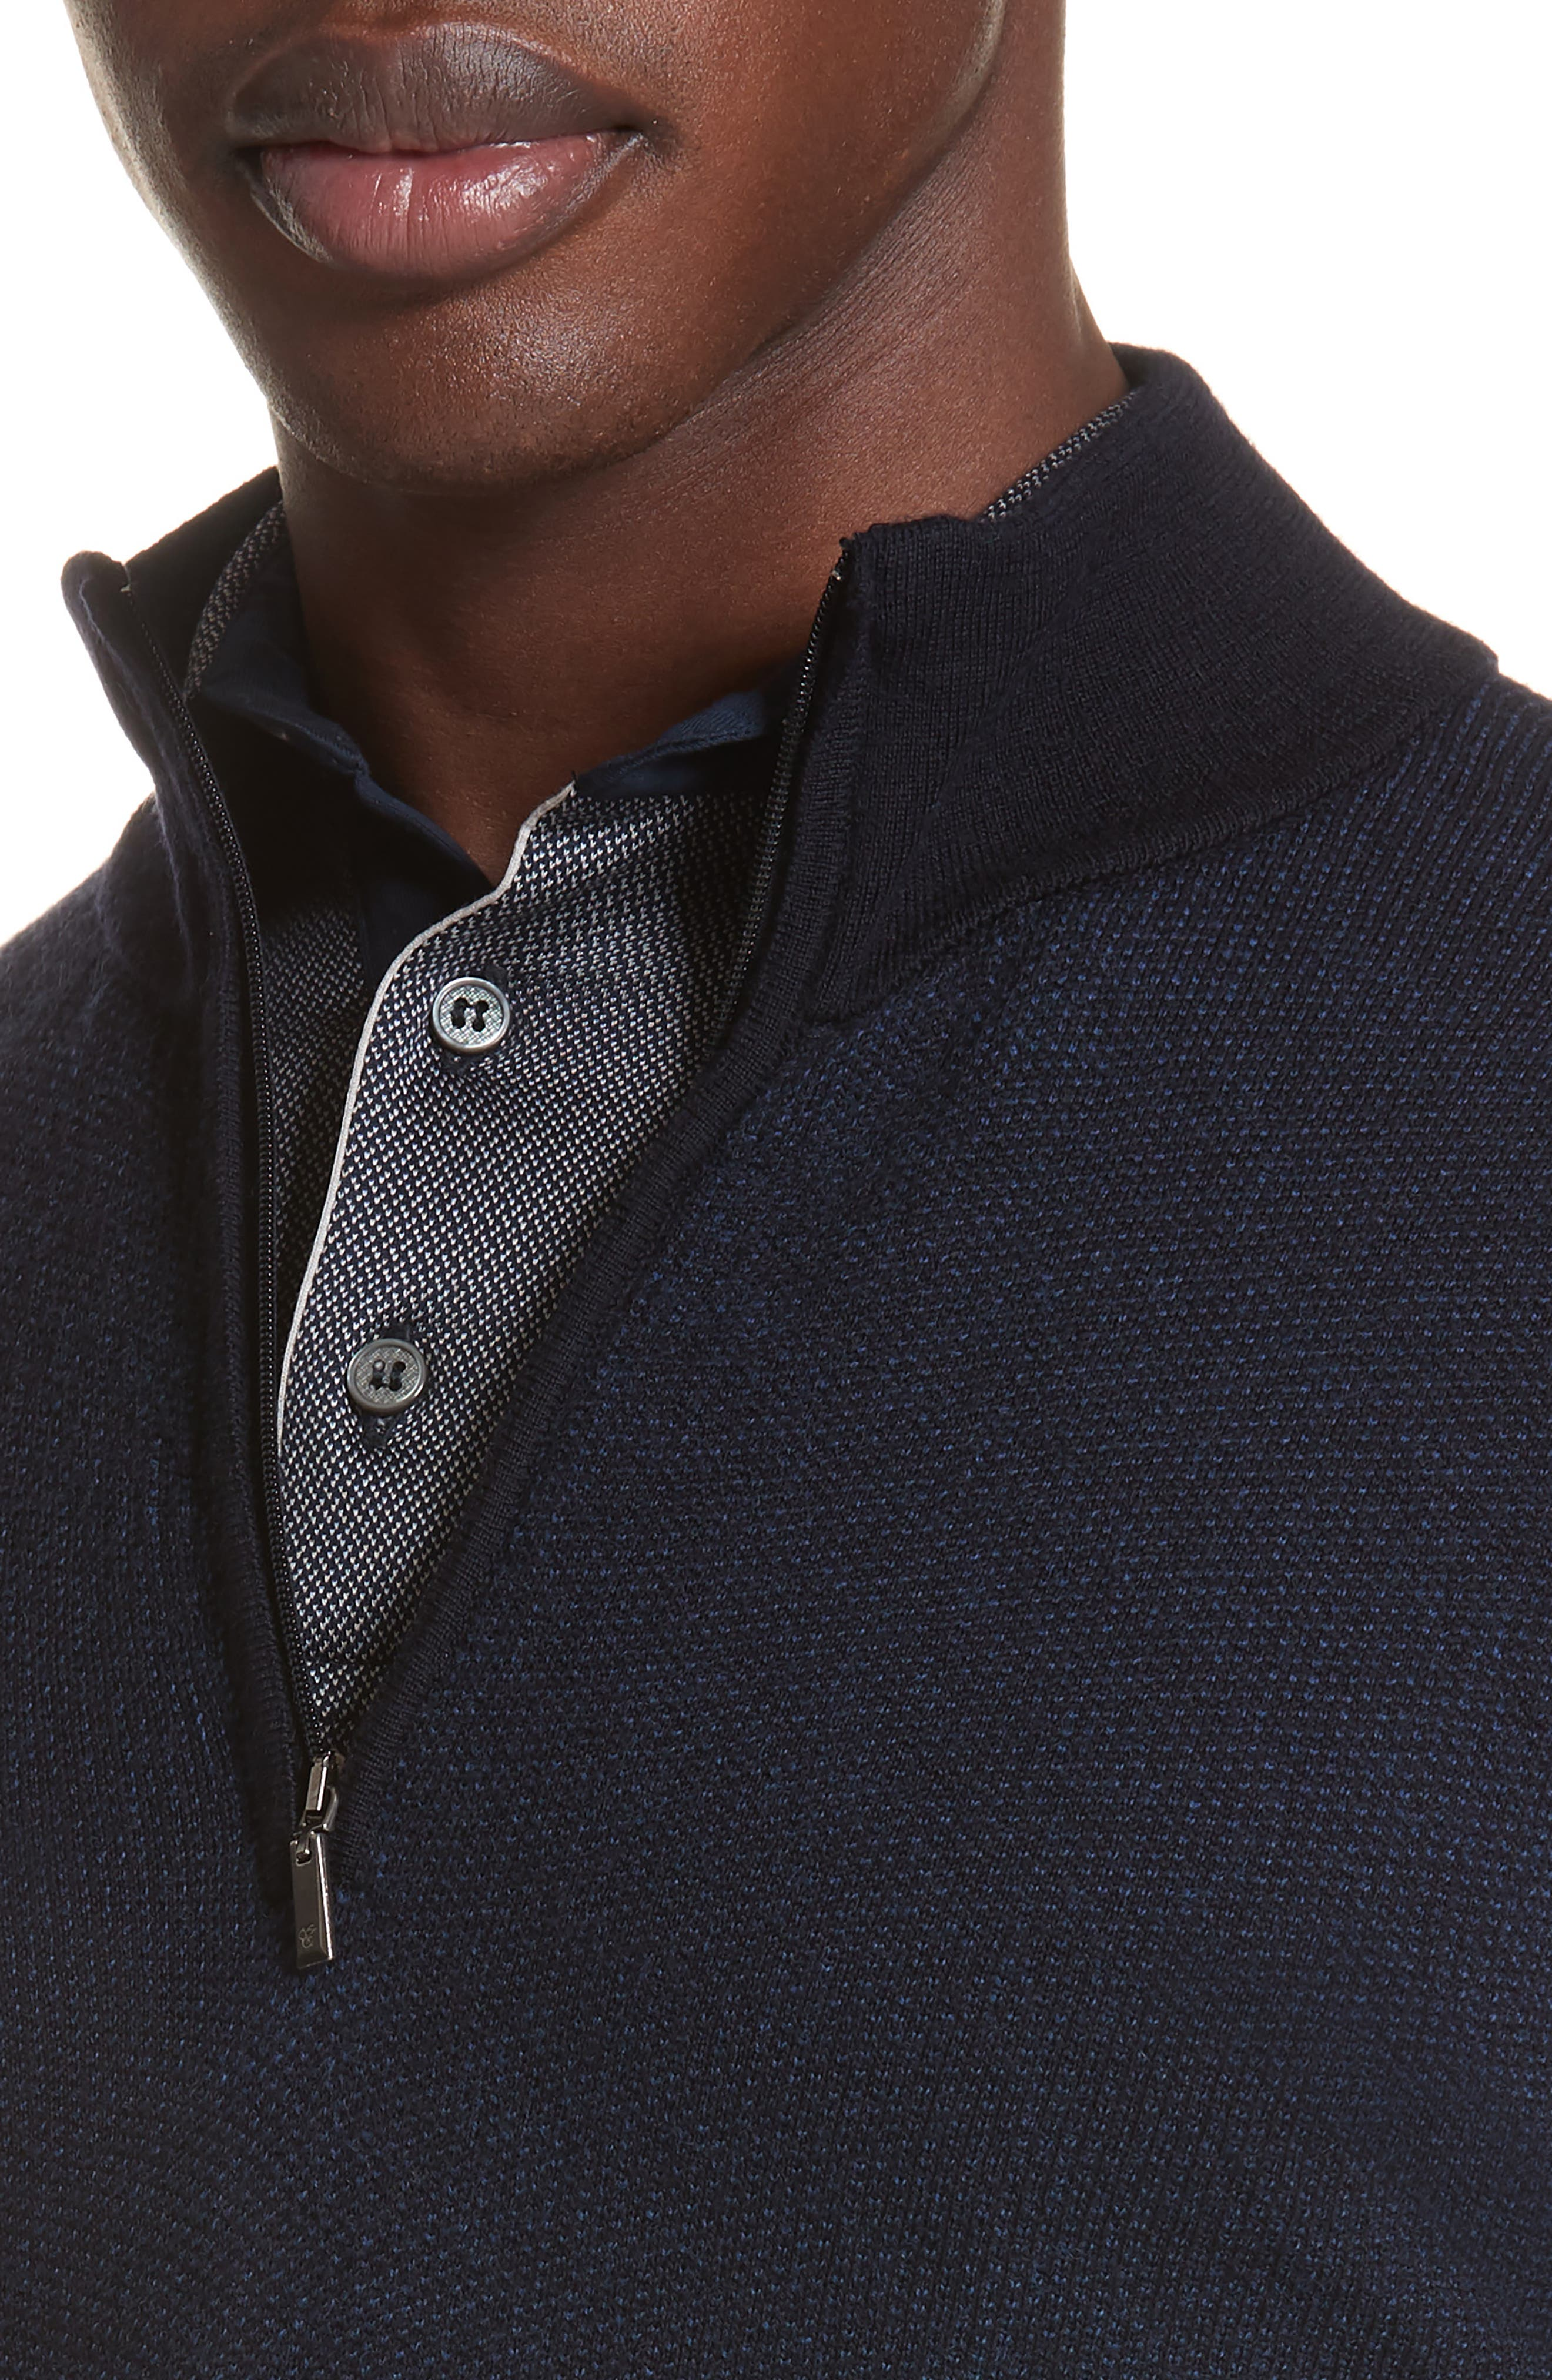 Quarter Zip Wool Sweater,                             Alternate thumbnail 4, color,                             400